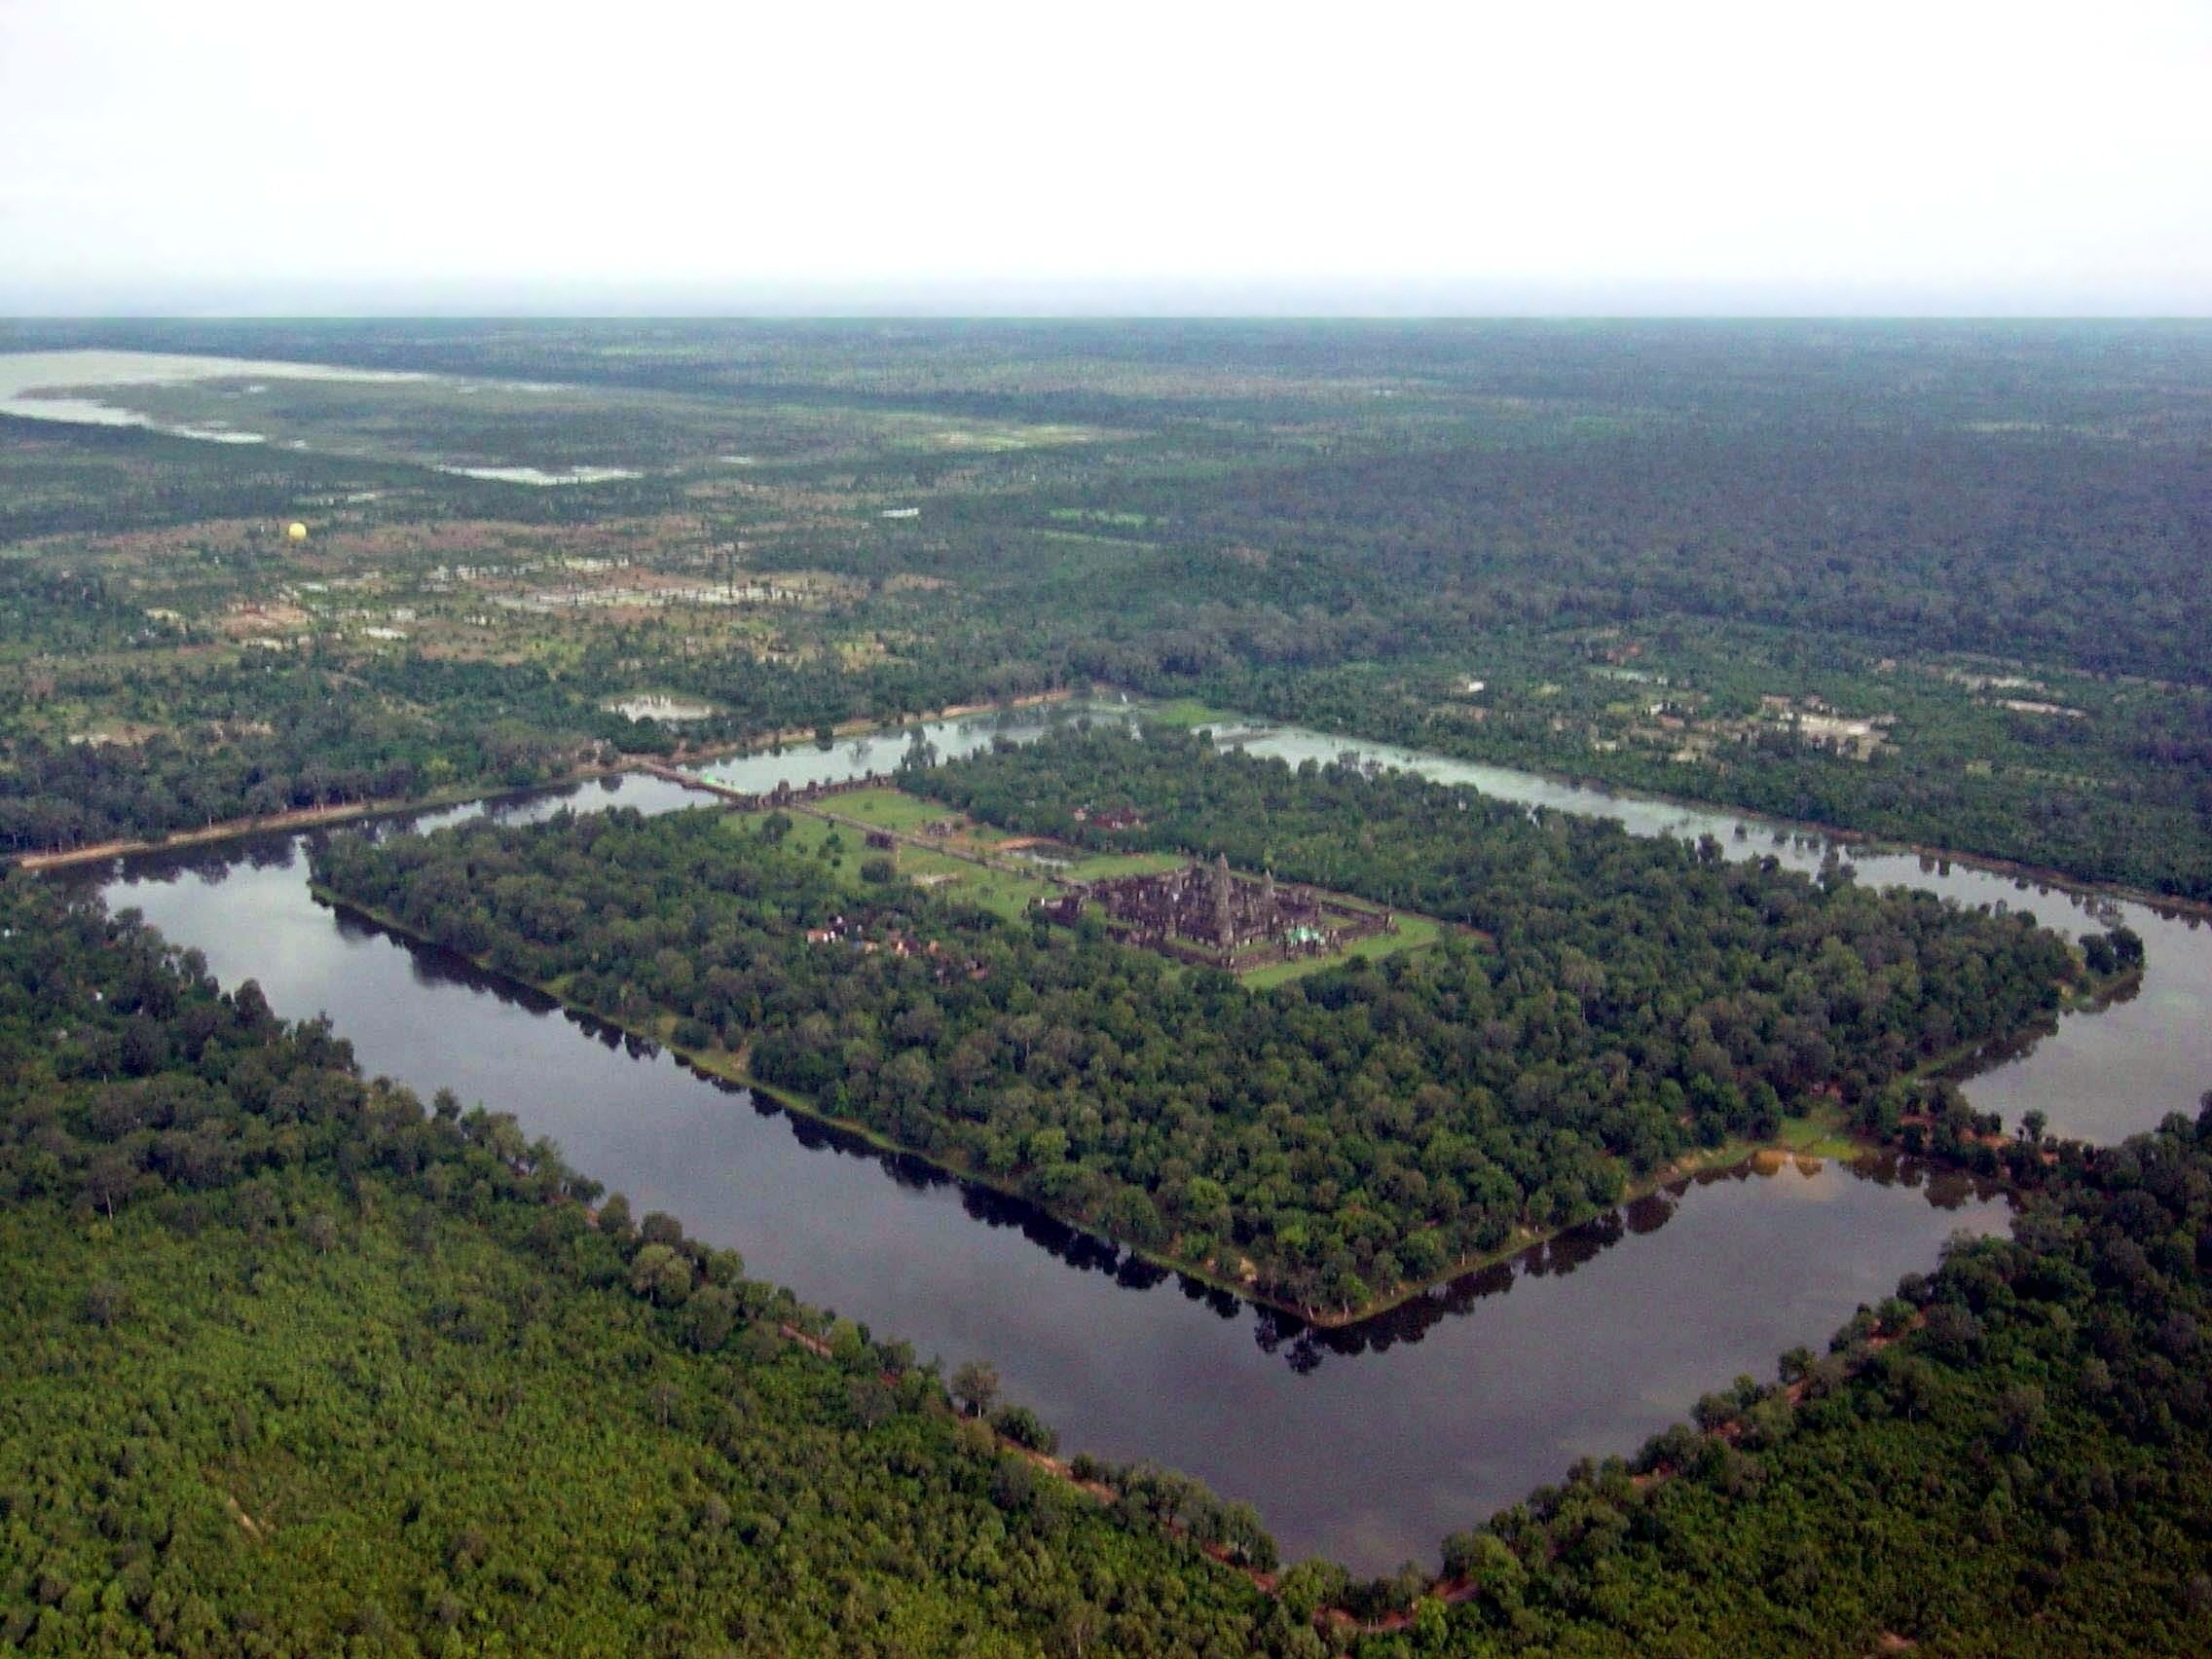 An area view of the complex showing the temple, the forest, and moat. Source:https://en.wikipedia.org/wiki/Angkor_Wat